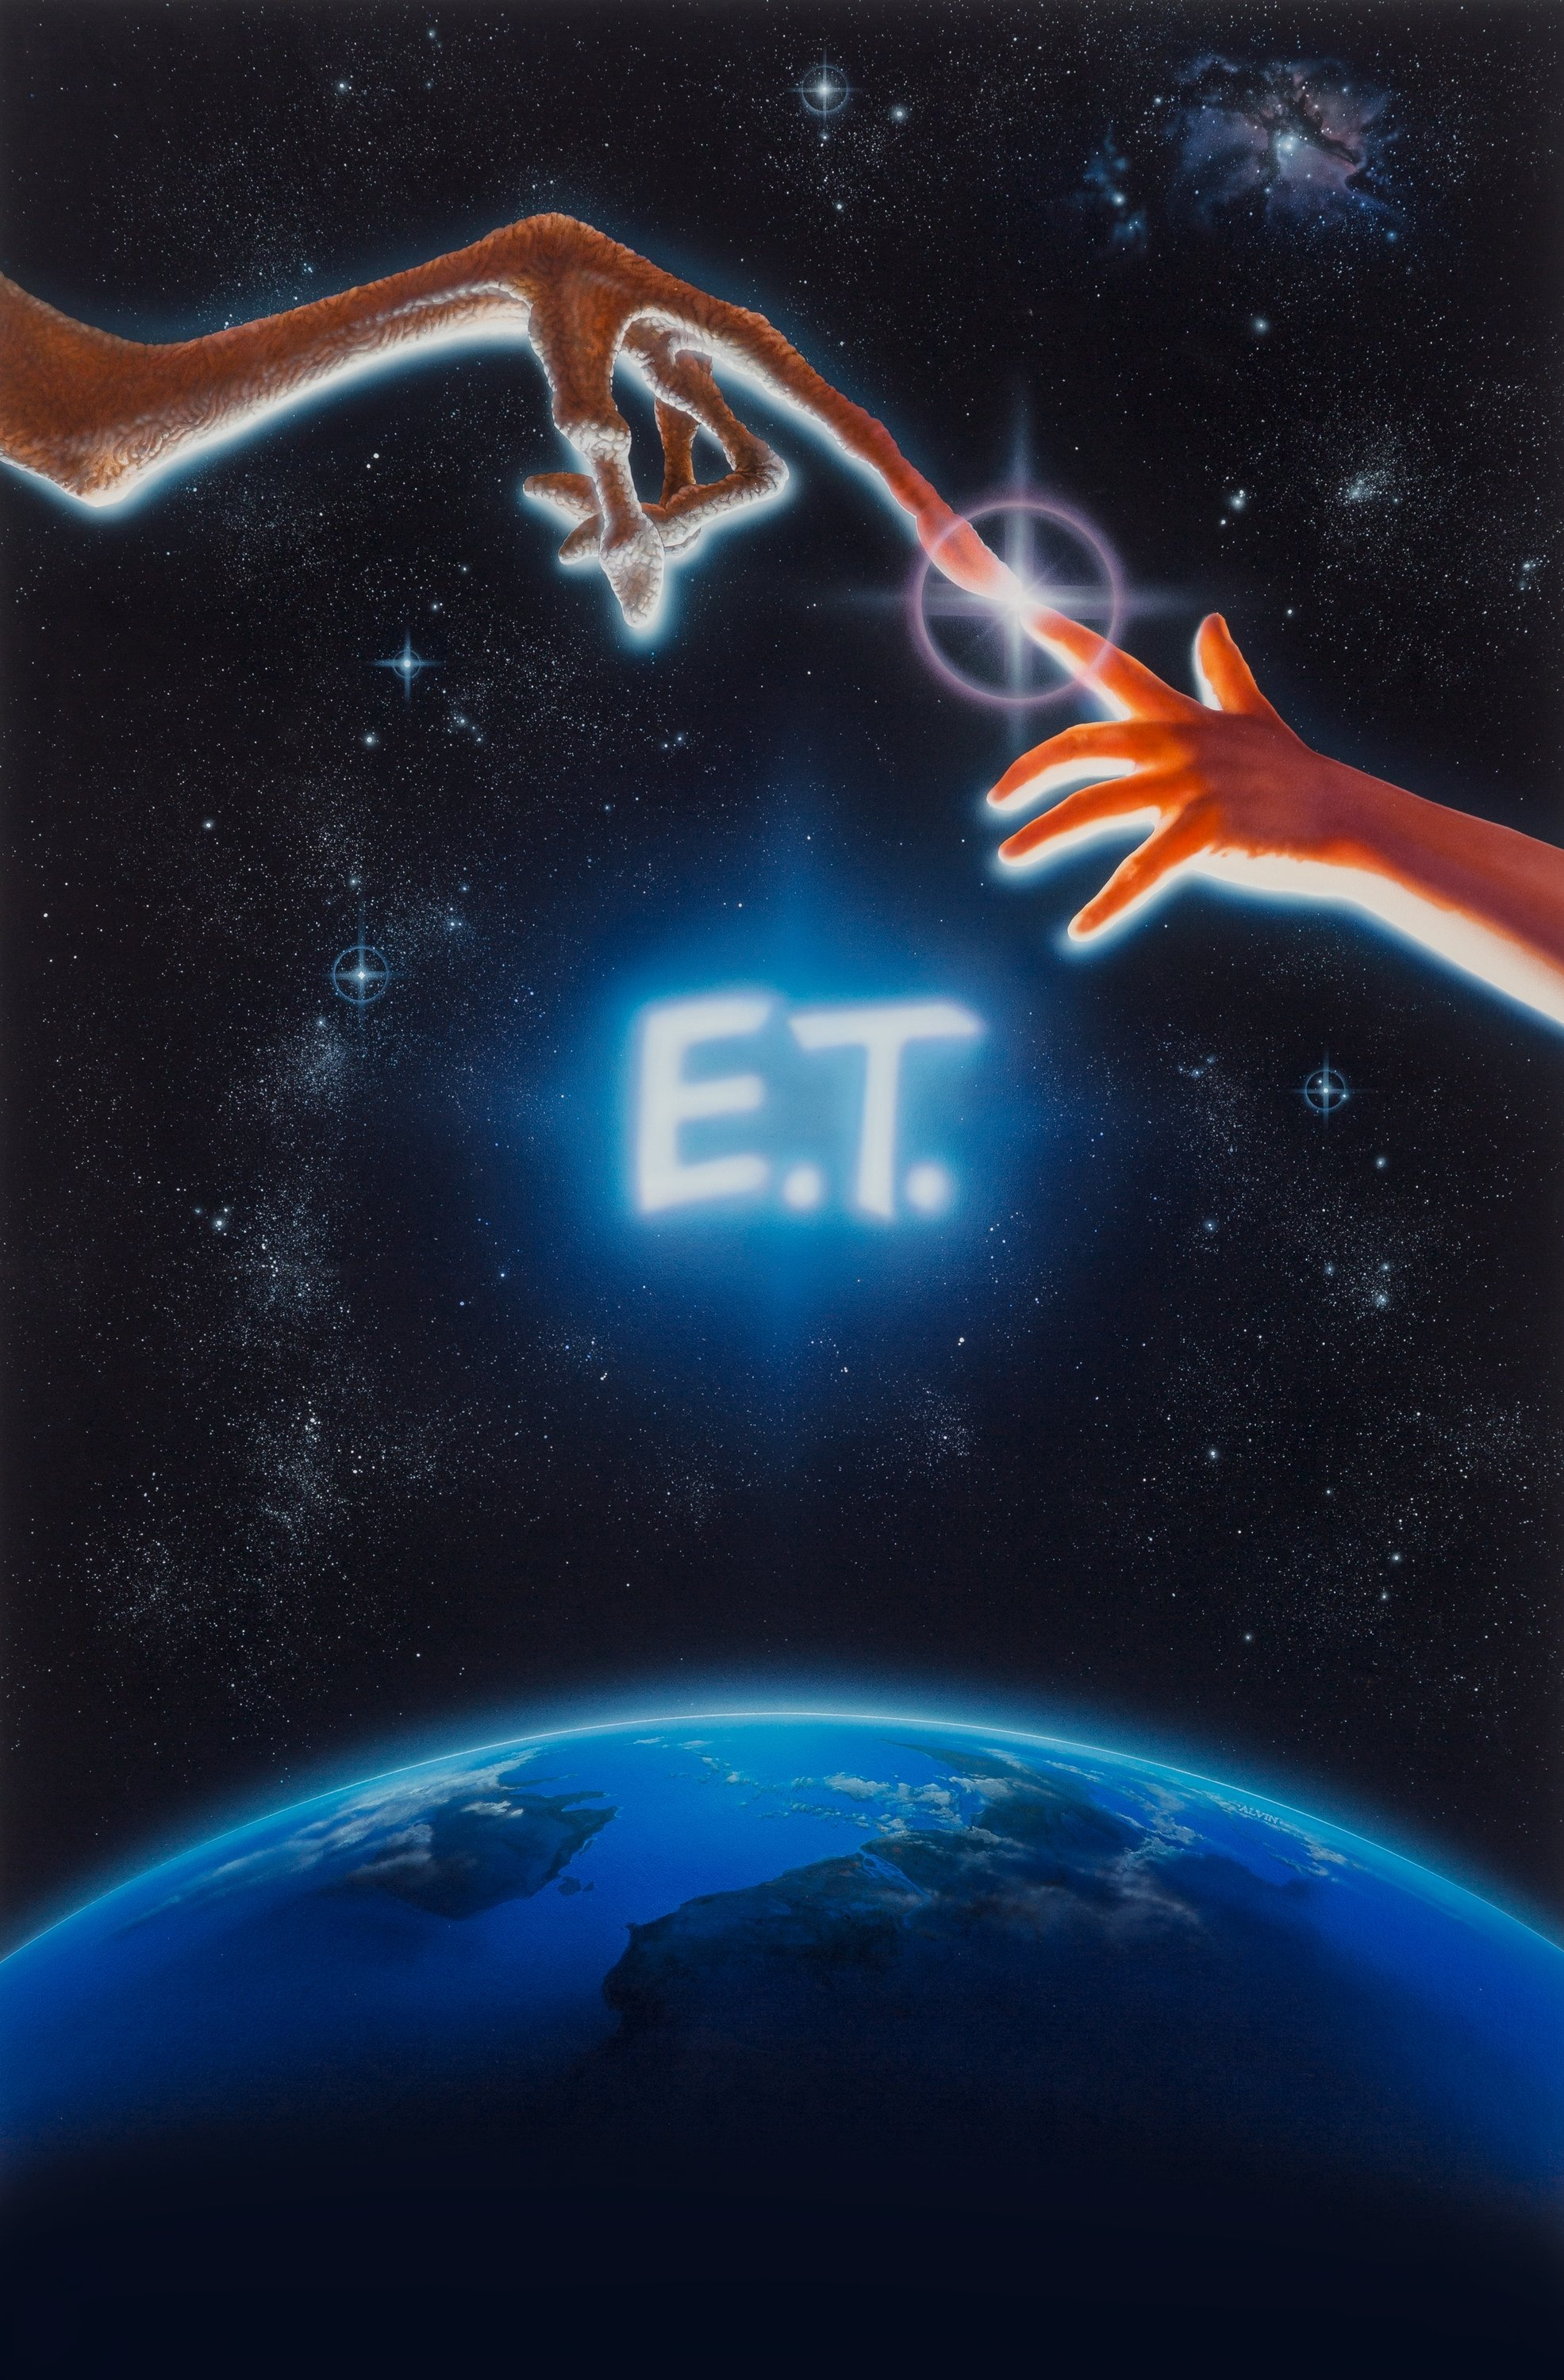 Original E.T. movie poster art sells for $394,000!